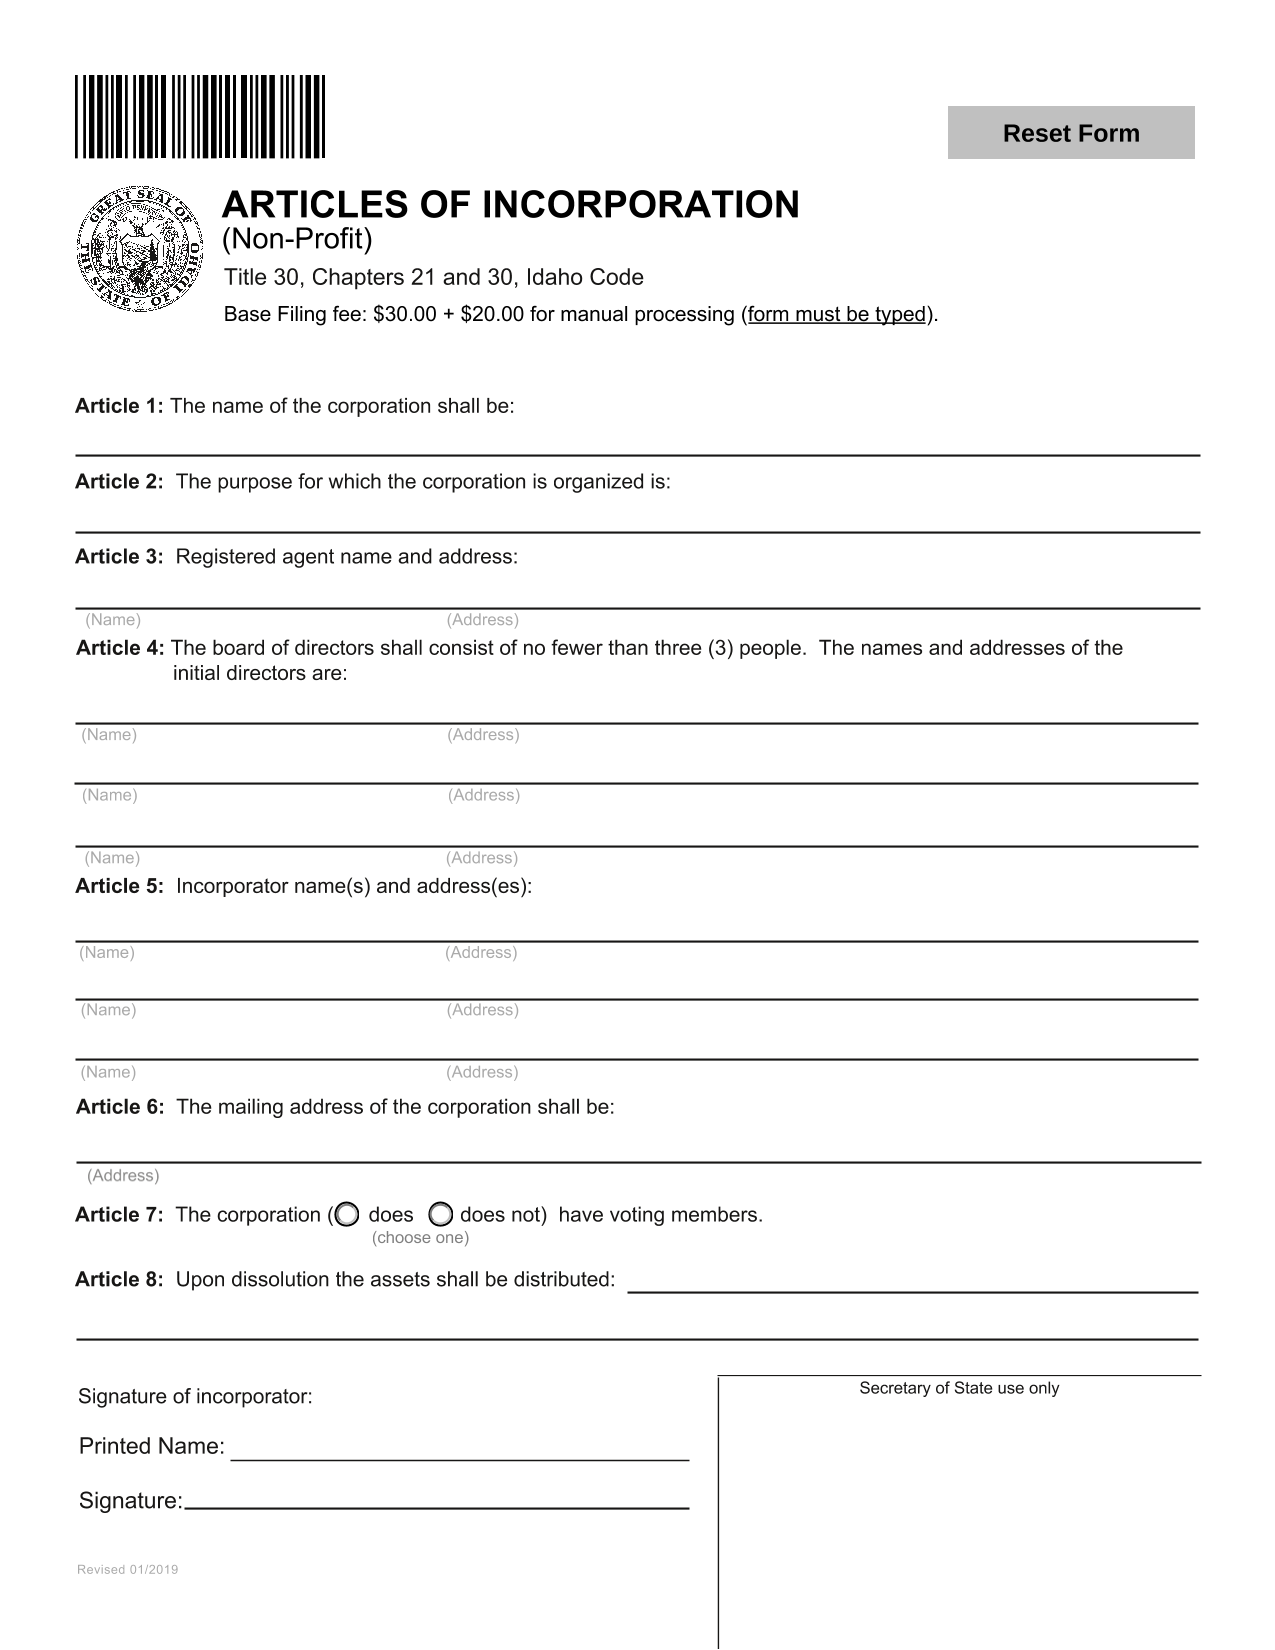 Idaho Articles of Incorporation (Non-Profit)